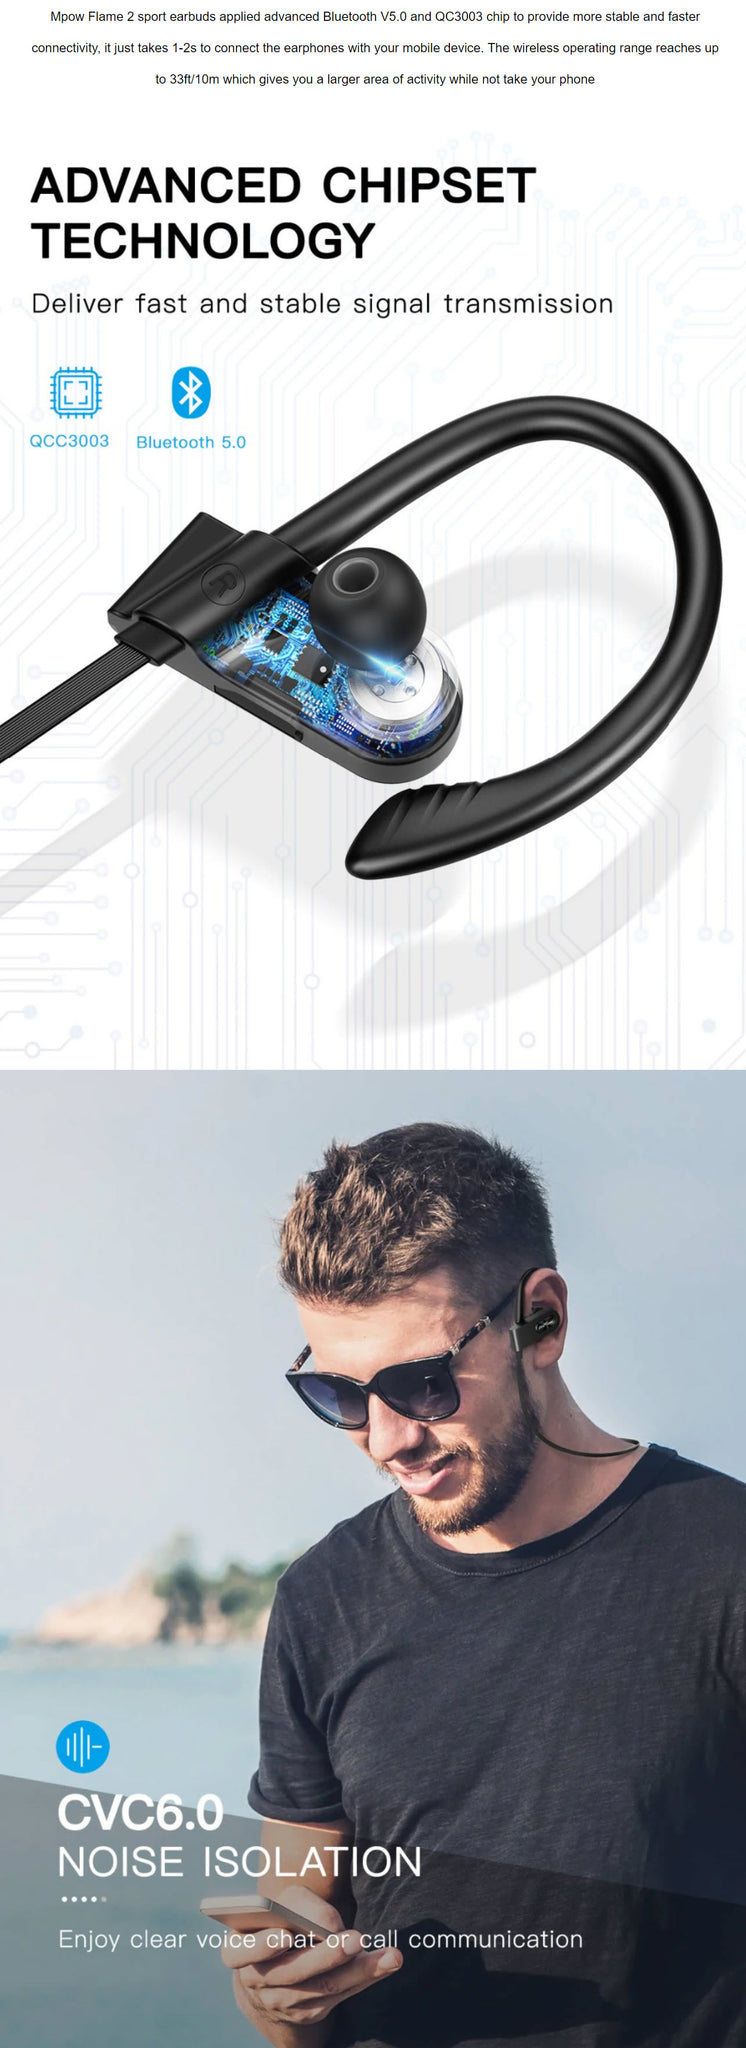 MPOW Flame 2 Sport Bluetooth Earphones Advanced Bluetooth Chipset Technology CVC6.0 Noise Isolation